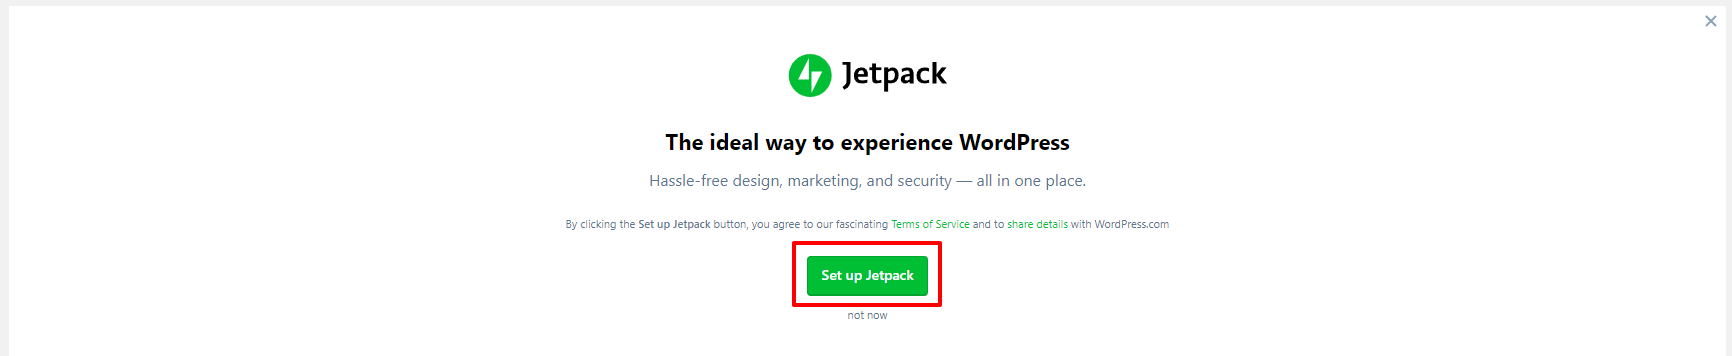 Set up Jetpack in WordPress | HollyPryce.com